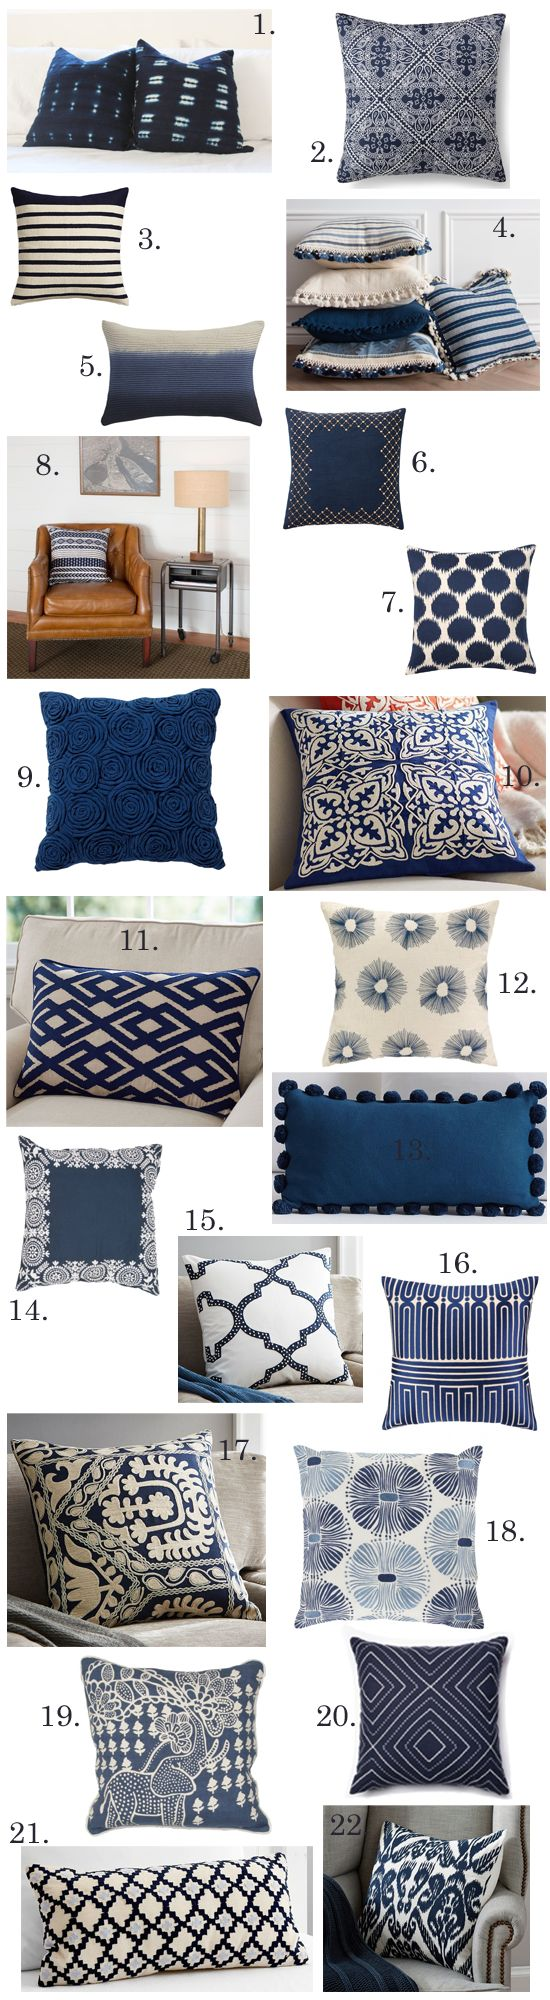 naby blue throw pillows master bedroom makeover                                                                                                                                                                                 More